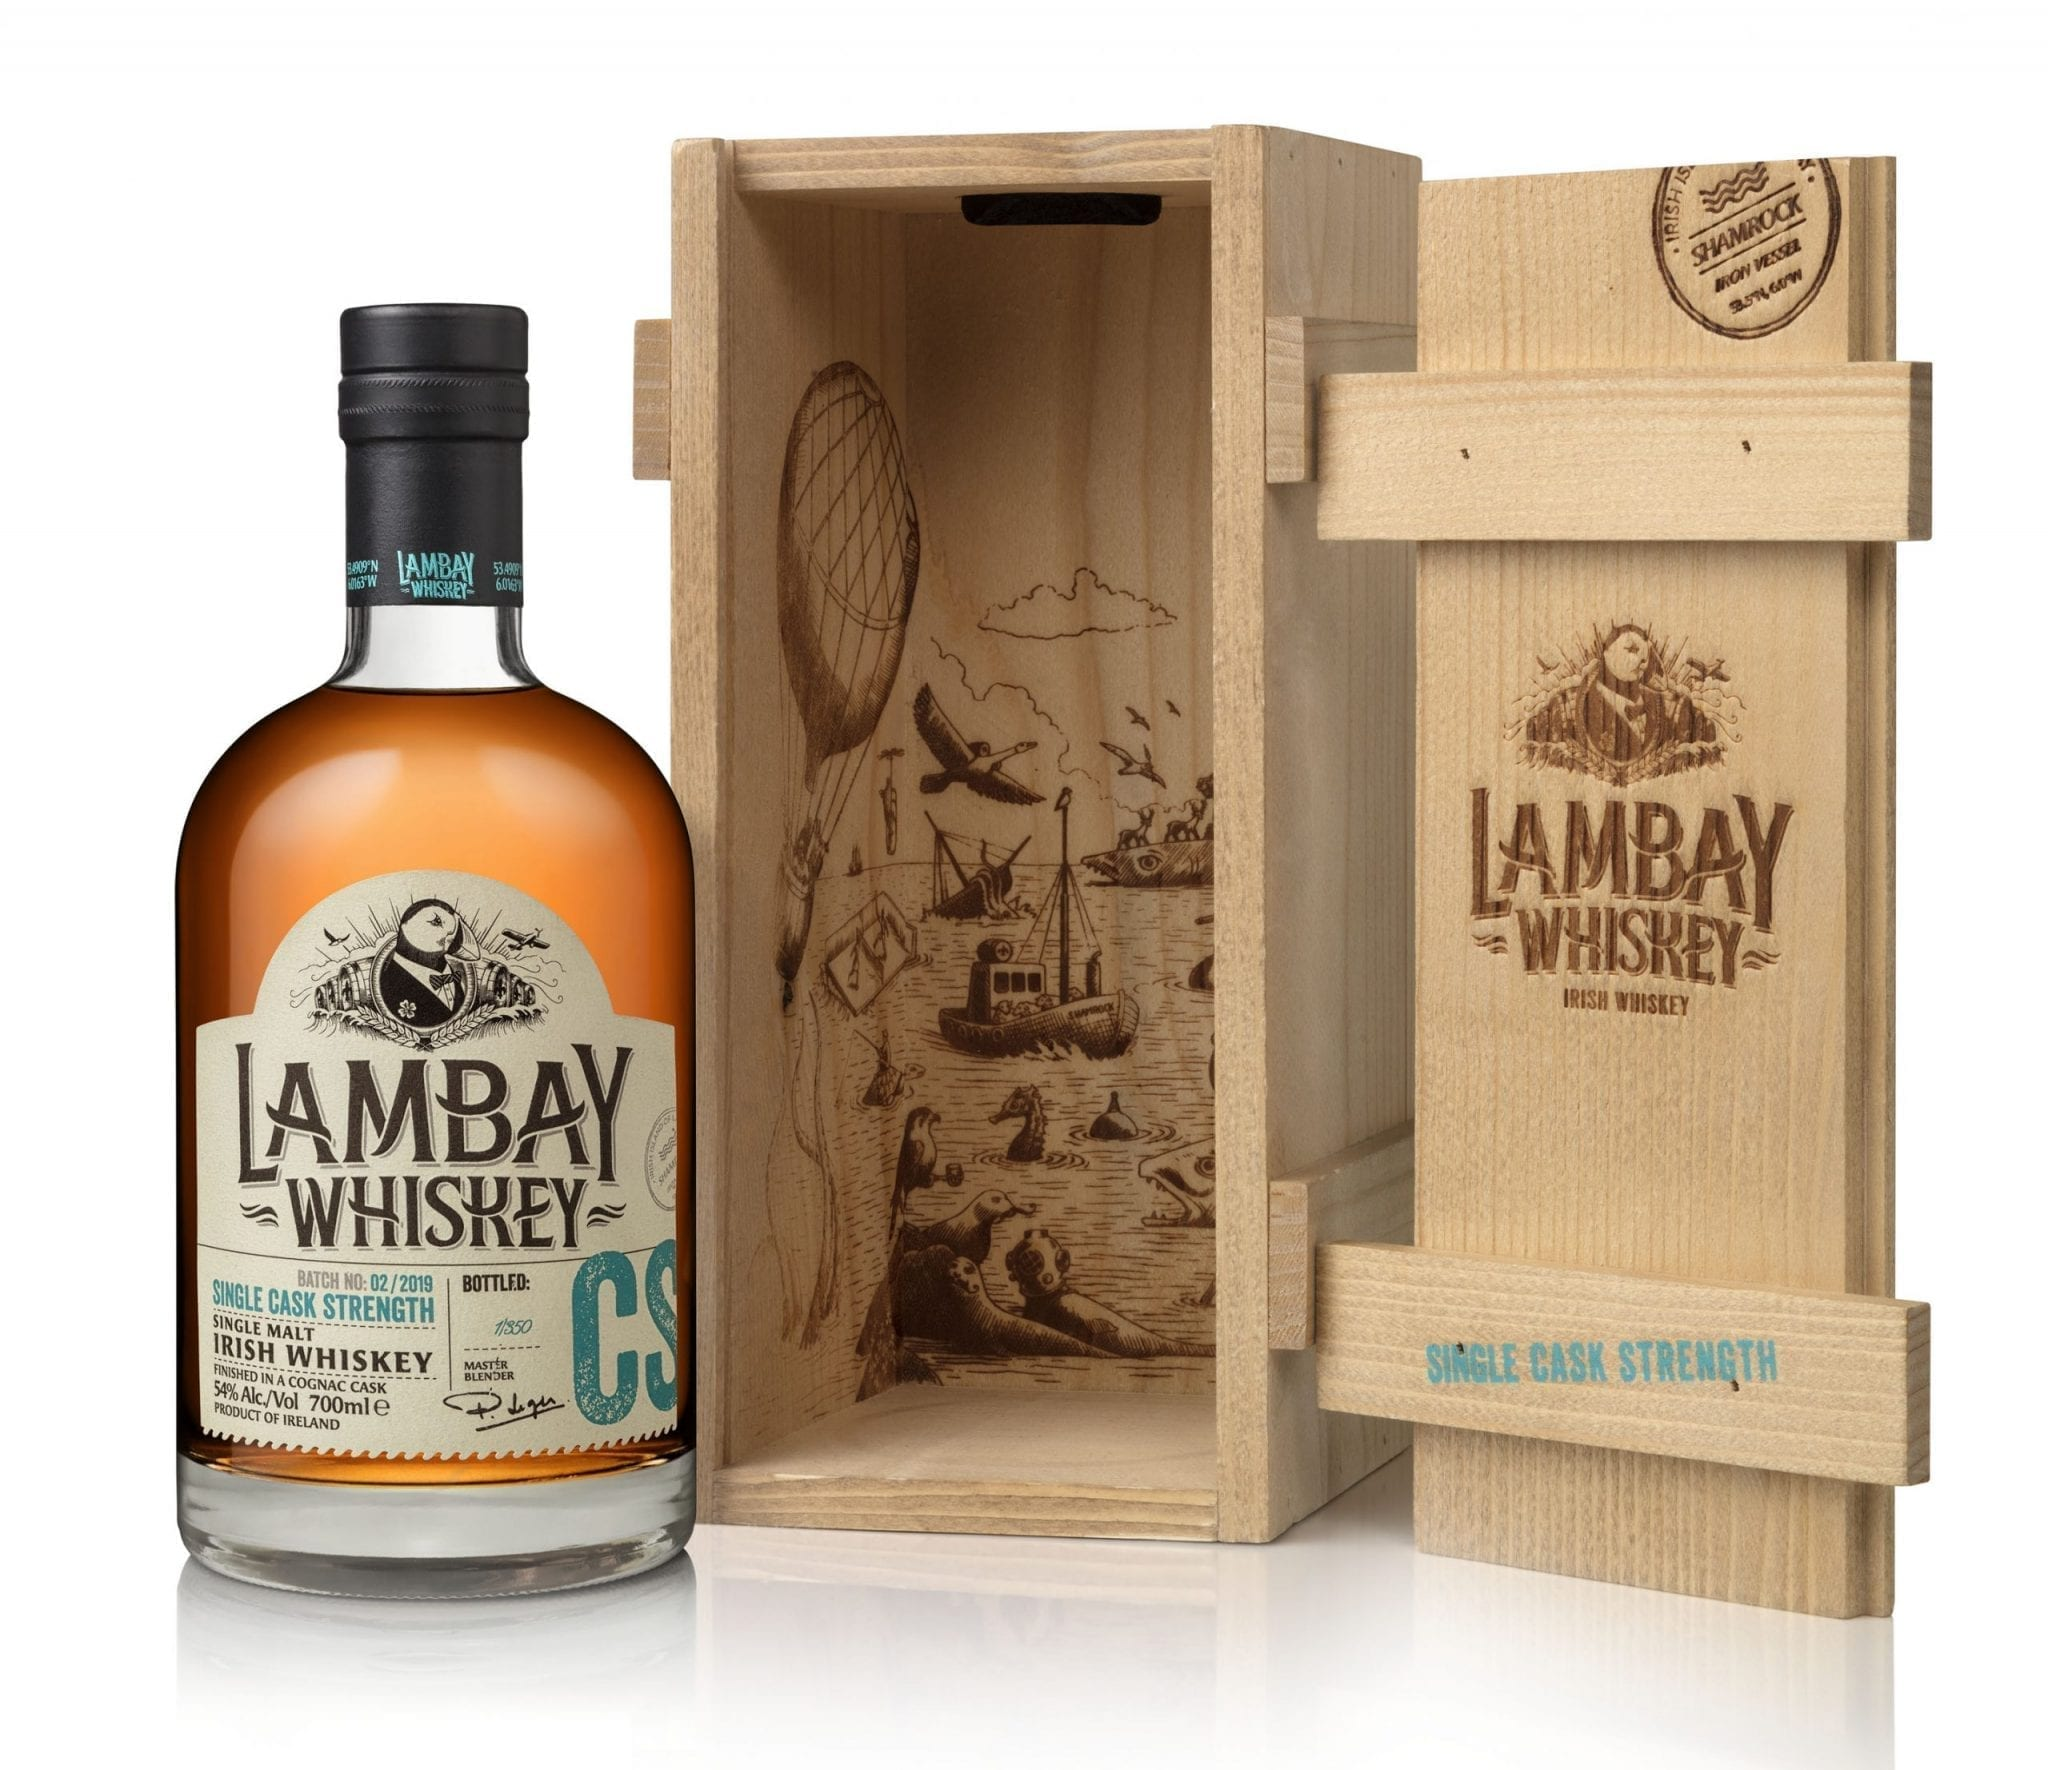 LAMBAY Cask Strength 03 scaled